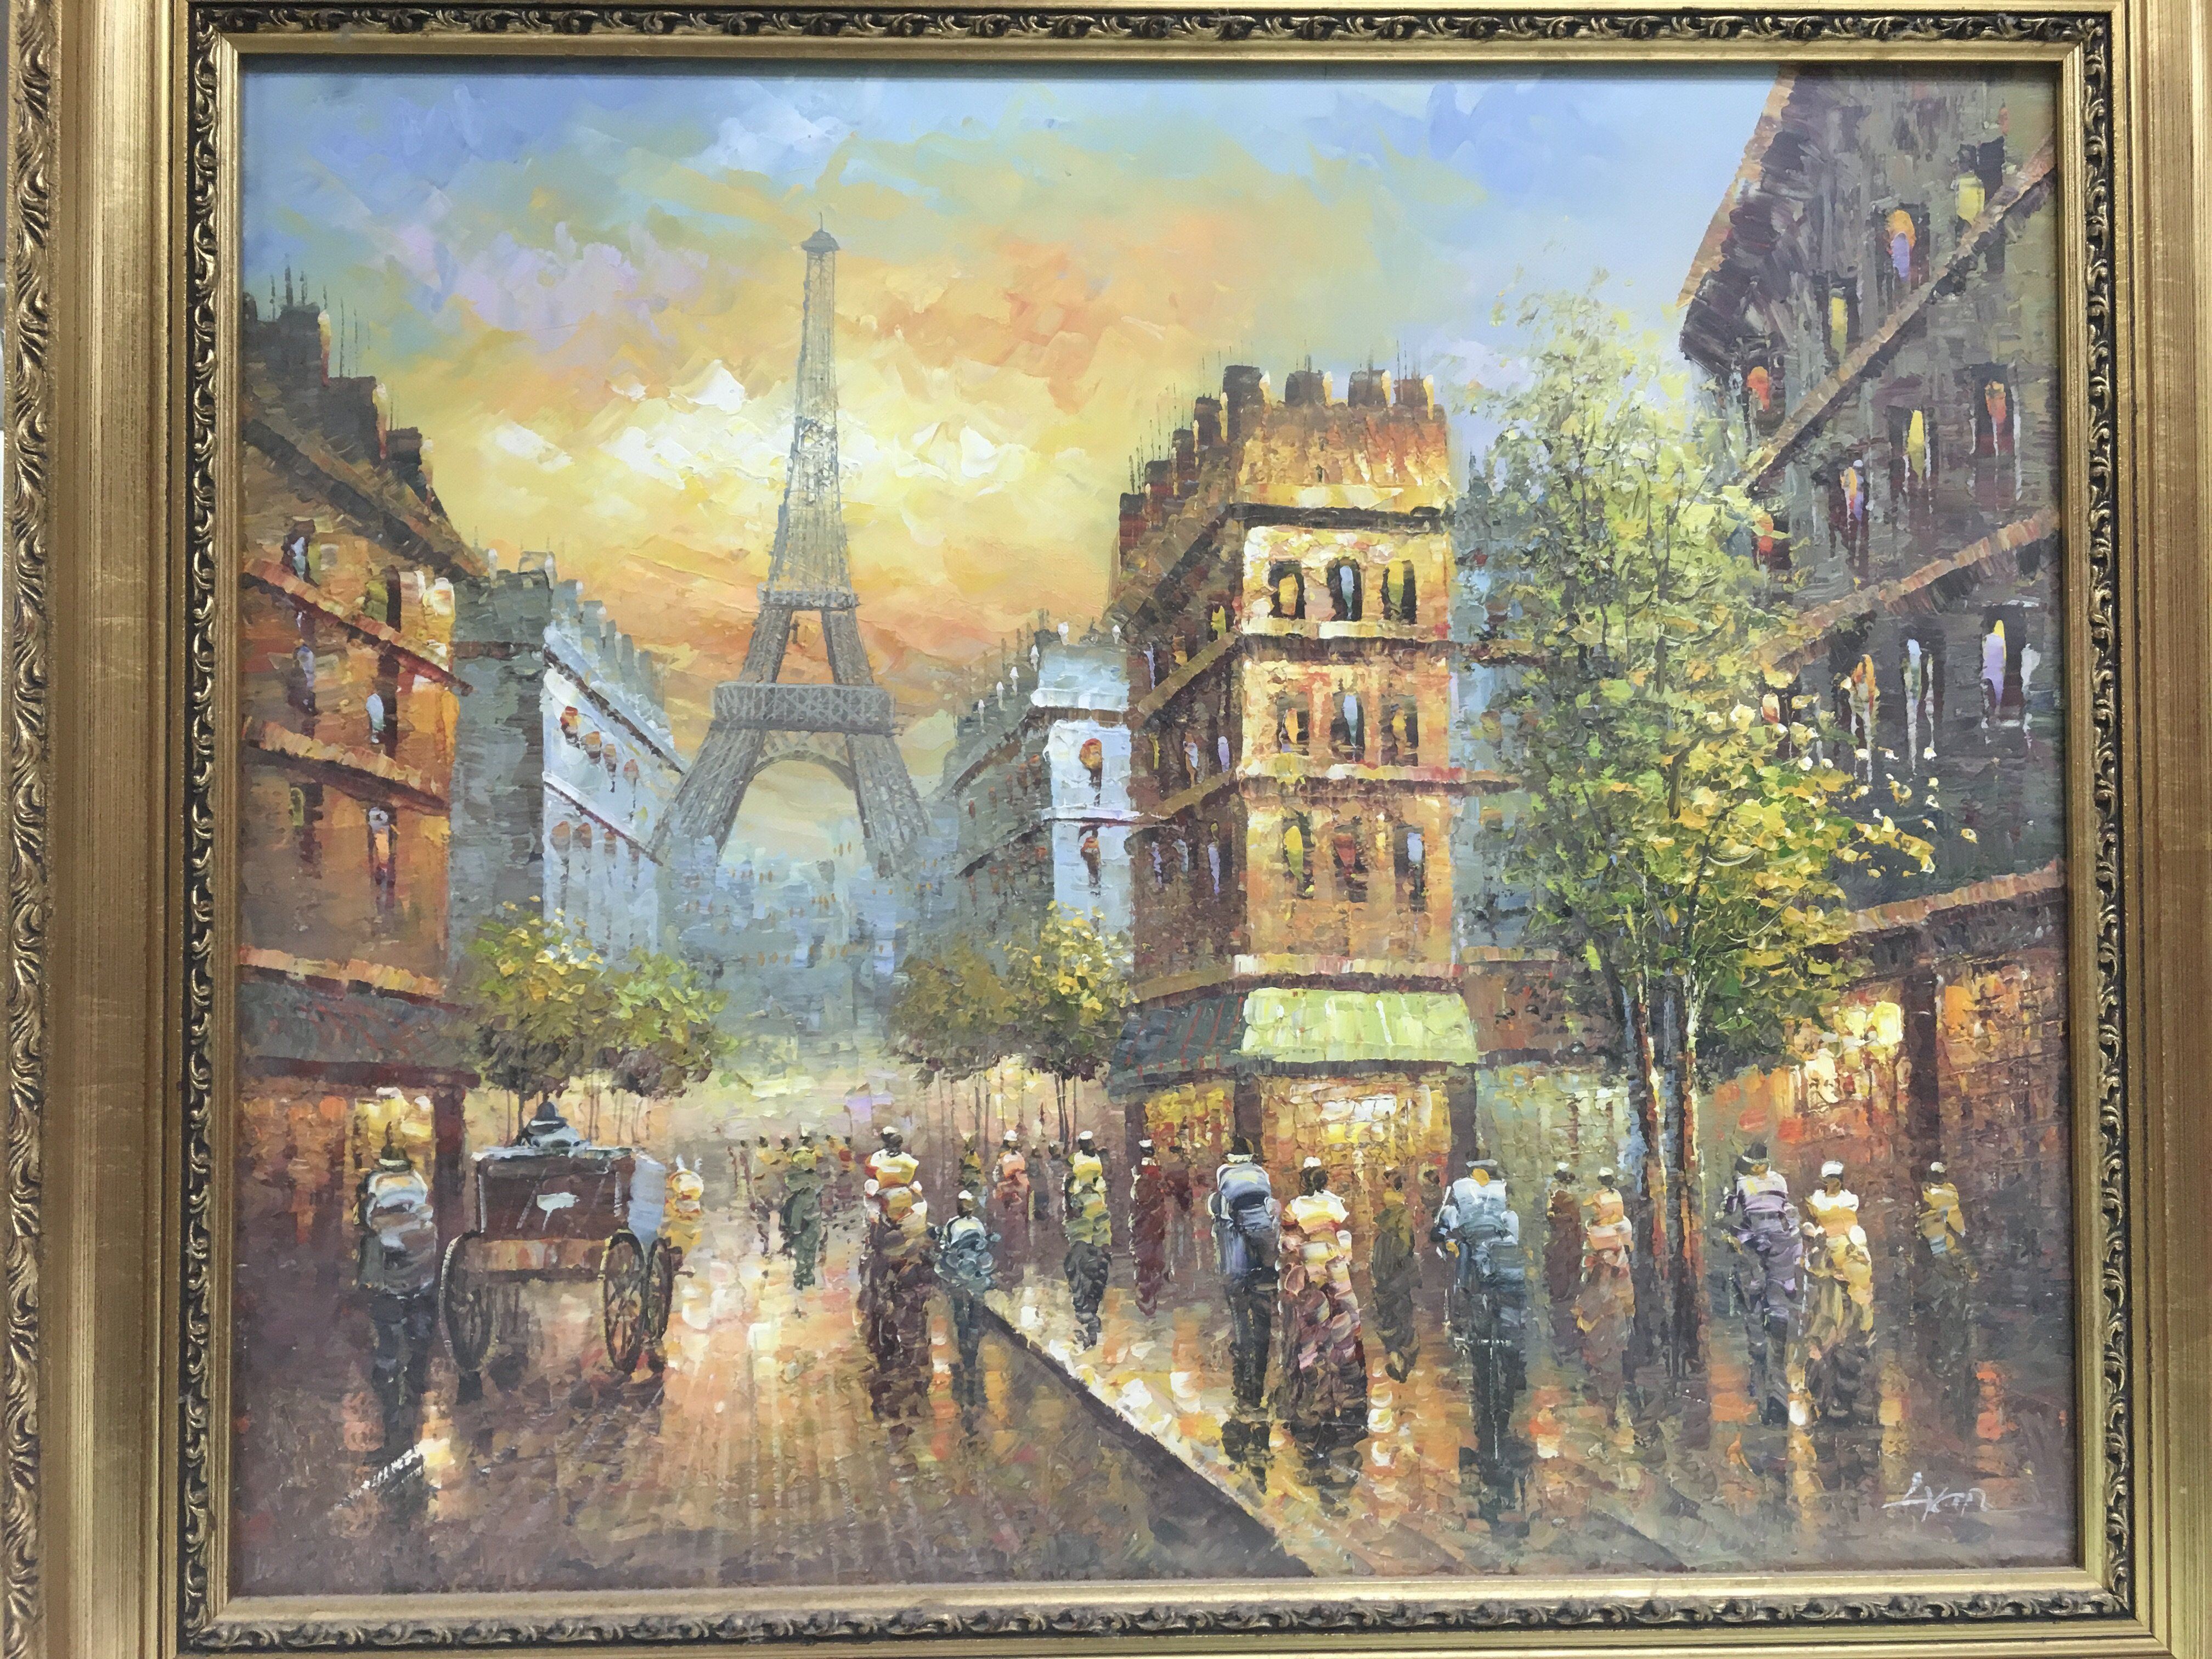 Lot 1231 - A gilt framed oil painting of a Parisian street scene, indistinctly signed, approx 75cm x 65cm.